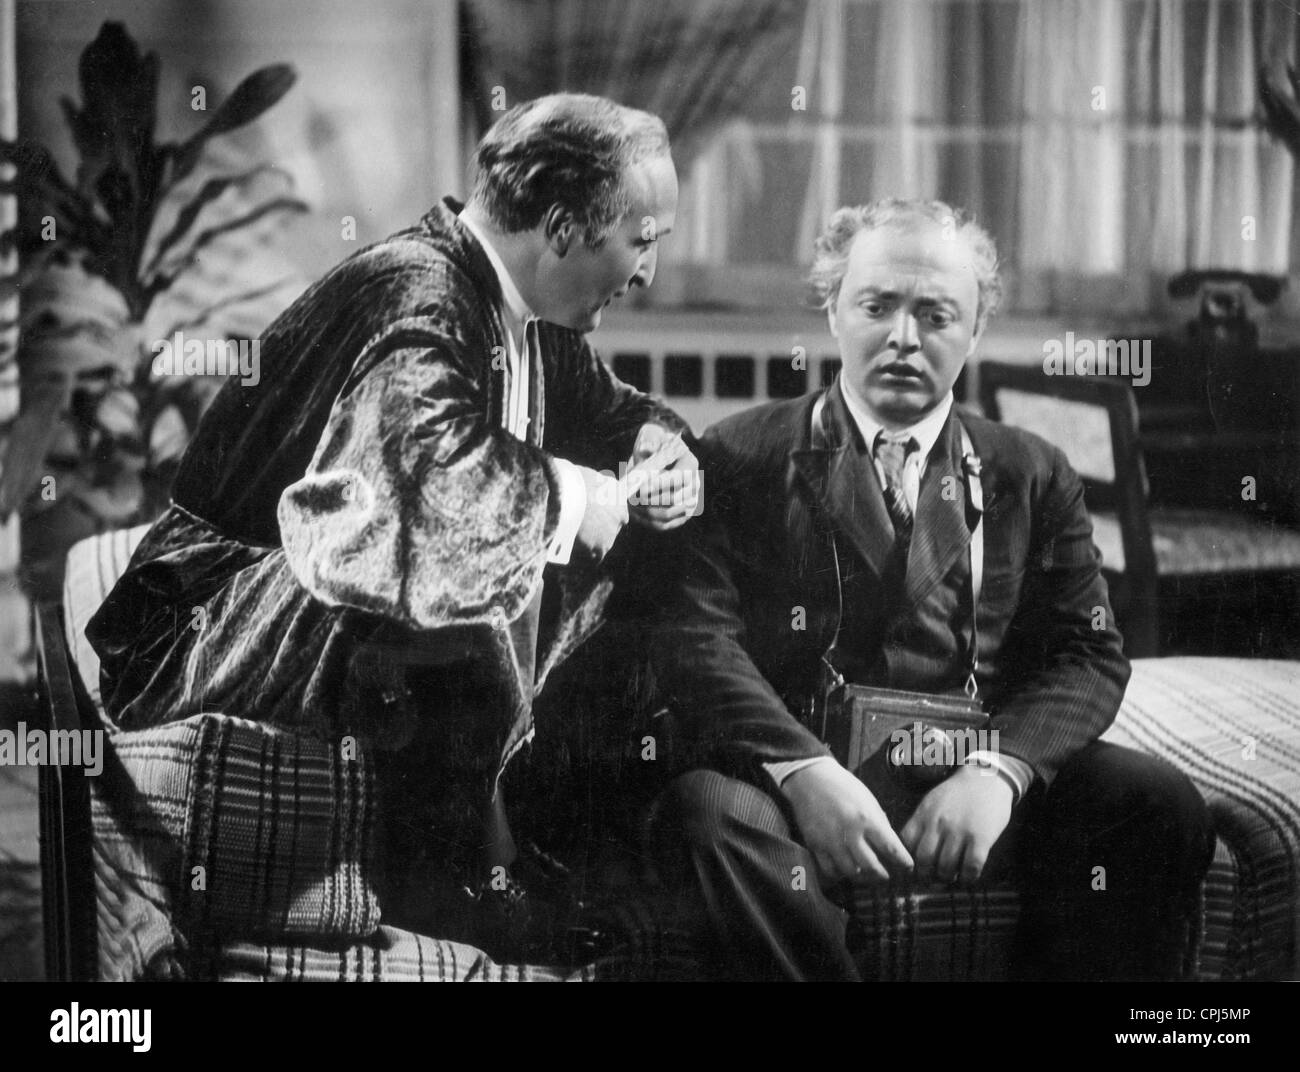 Hans Albers and Peter Lorre in 'F.P.1 Doesn't Answer', 1932 - Stock Image